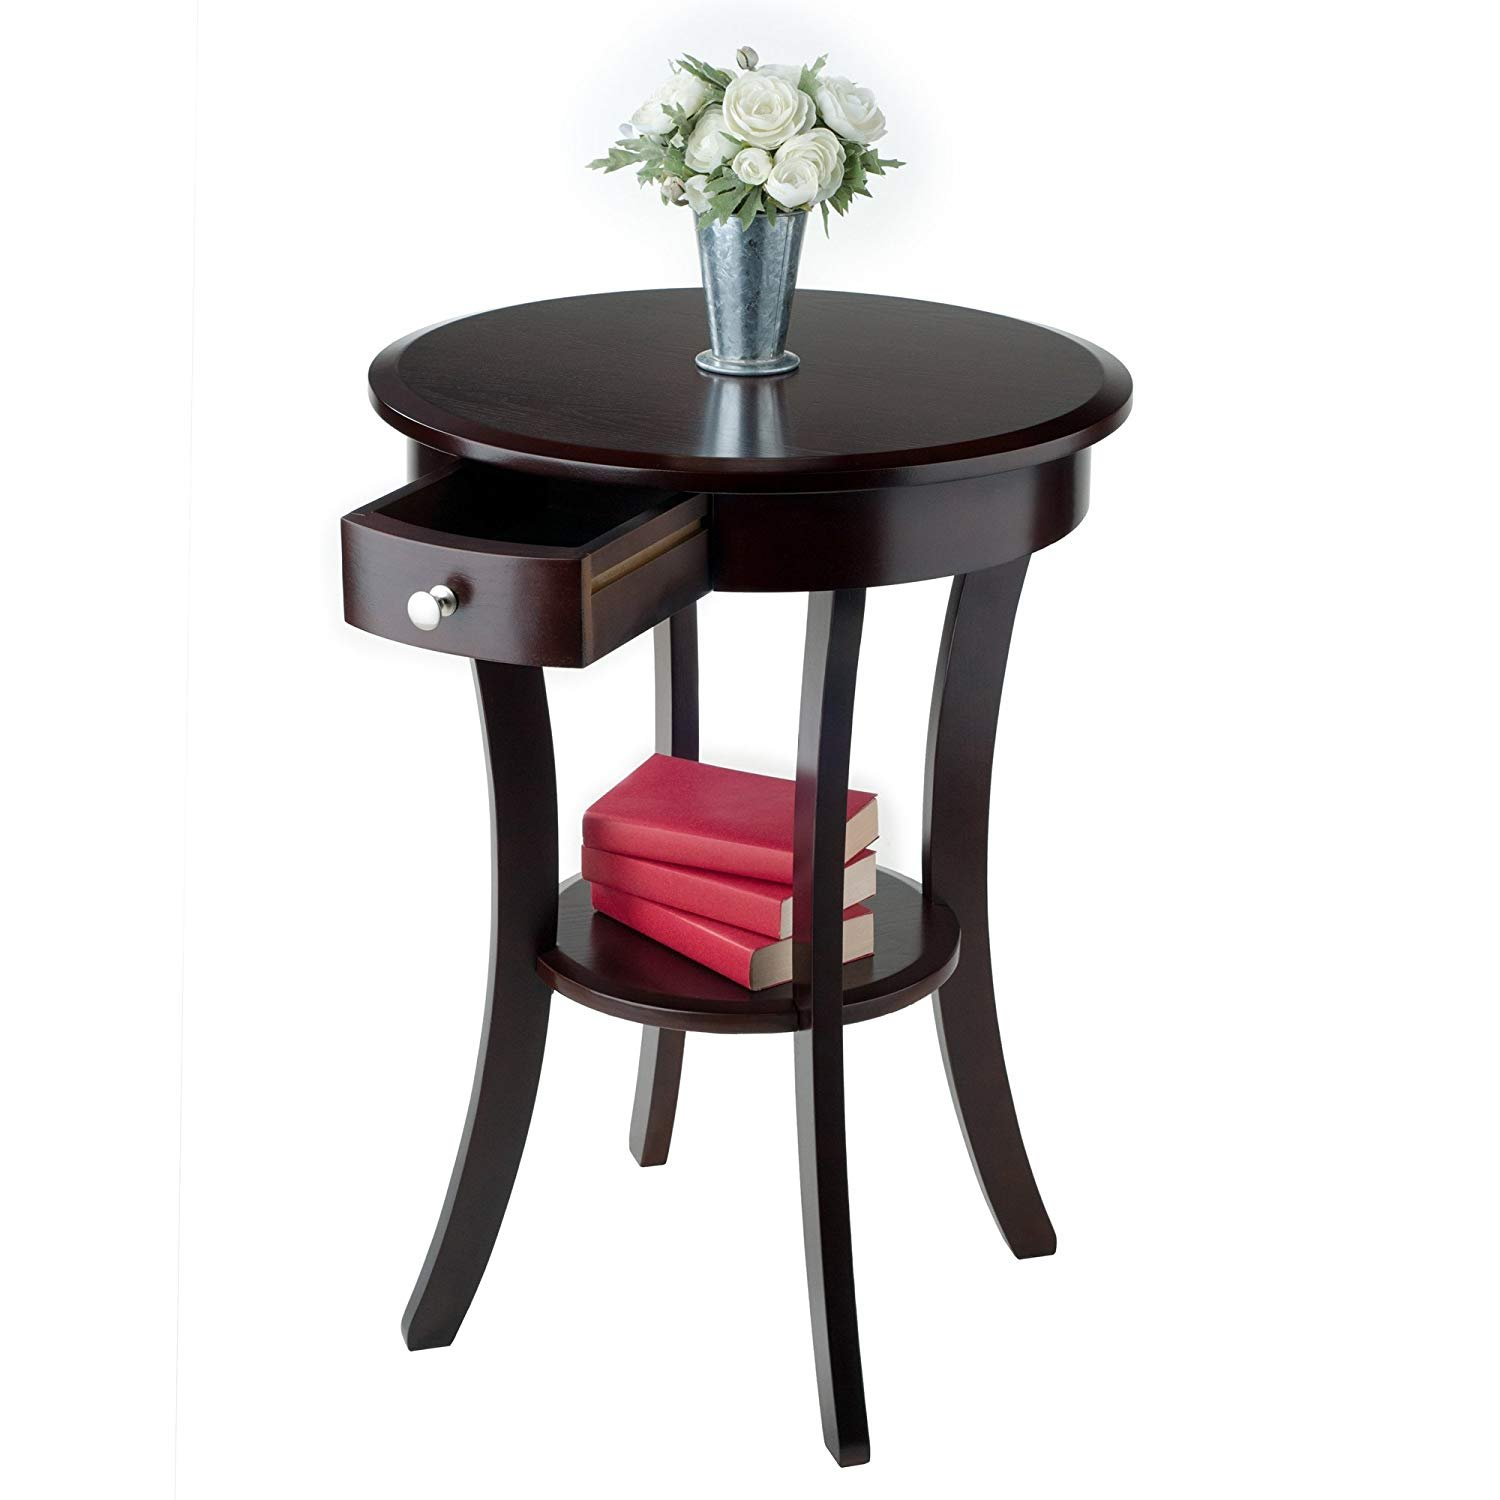 small accent table for places round cappuccino wjml winsome wood cassie with glass top finish premium night stand drawer kitchen dining home furnishings edmonton shoe drawing end